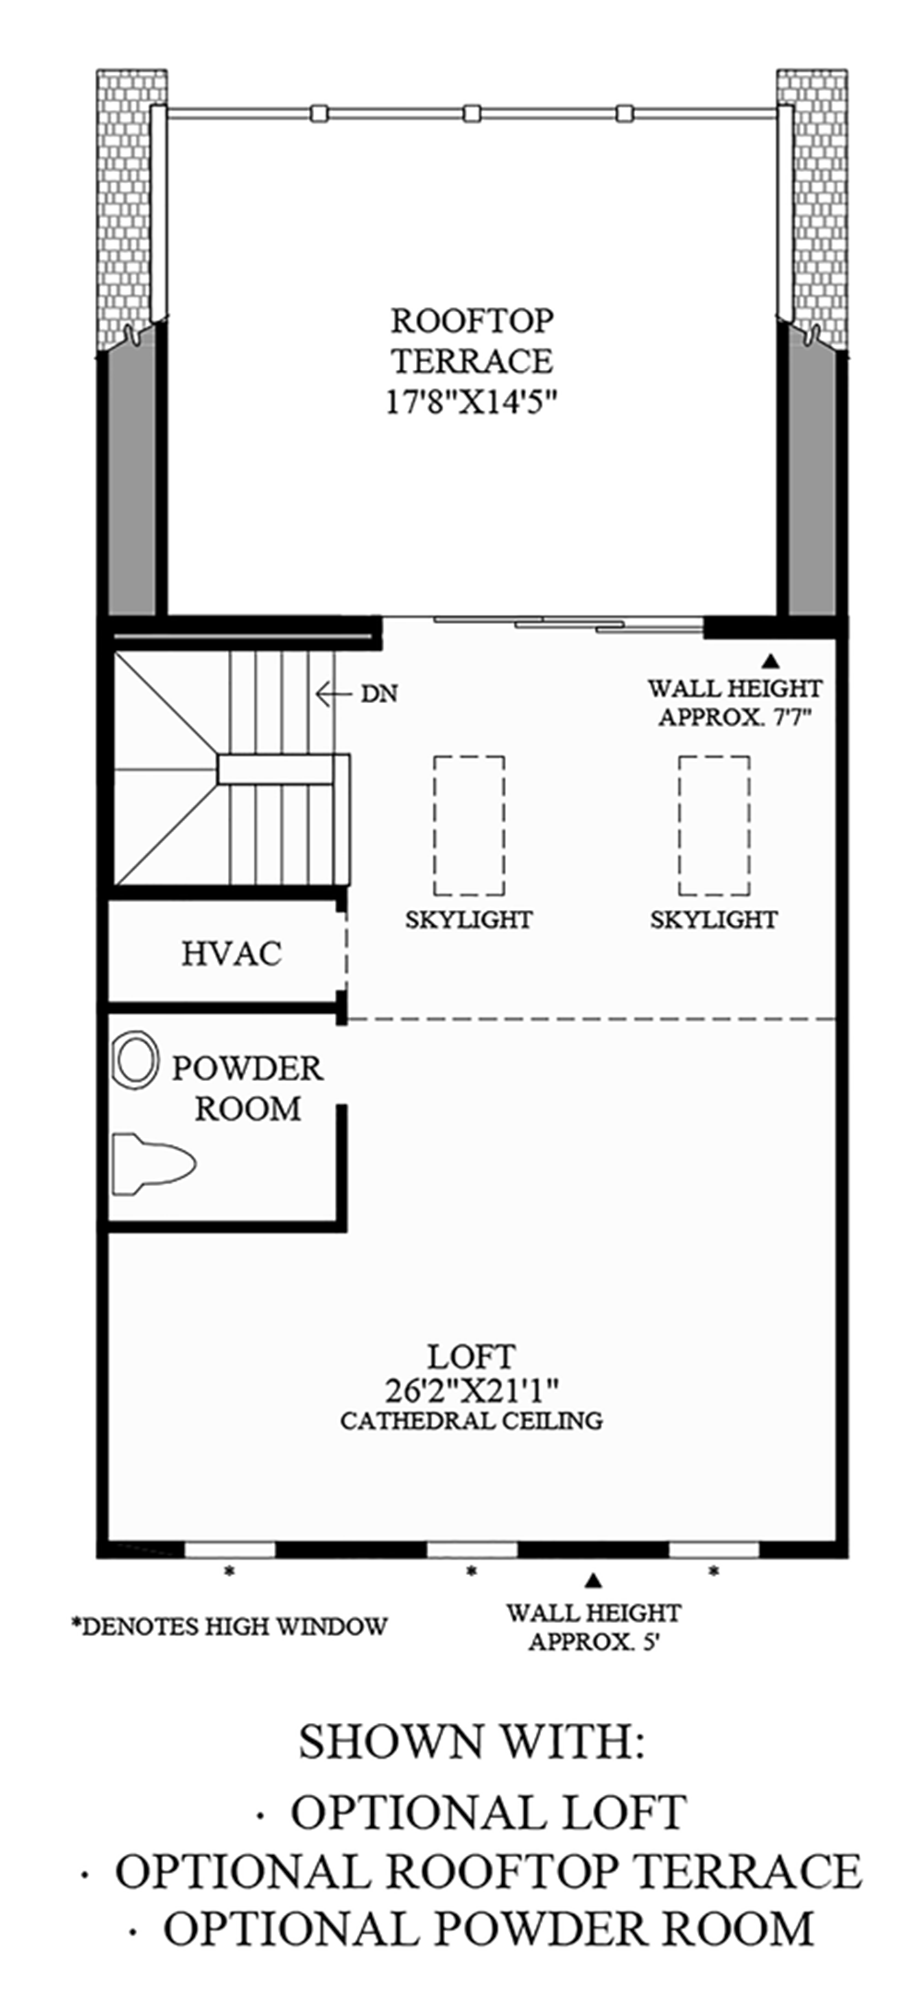 Optional Loft/Rooftop Terrace Floor Plan